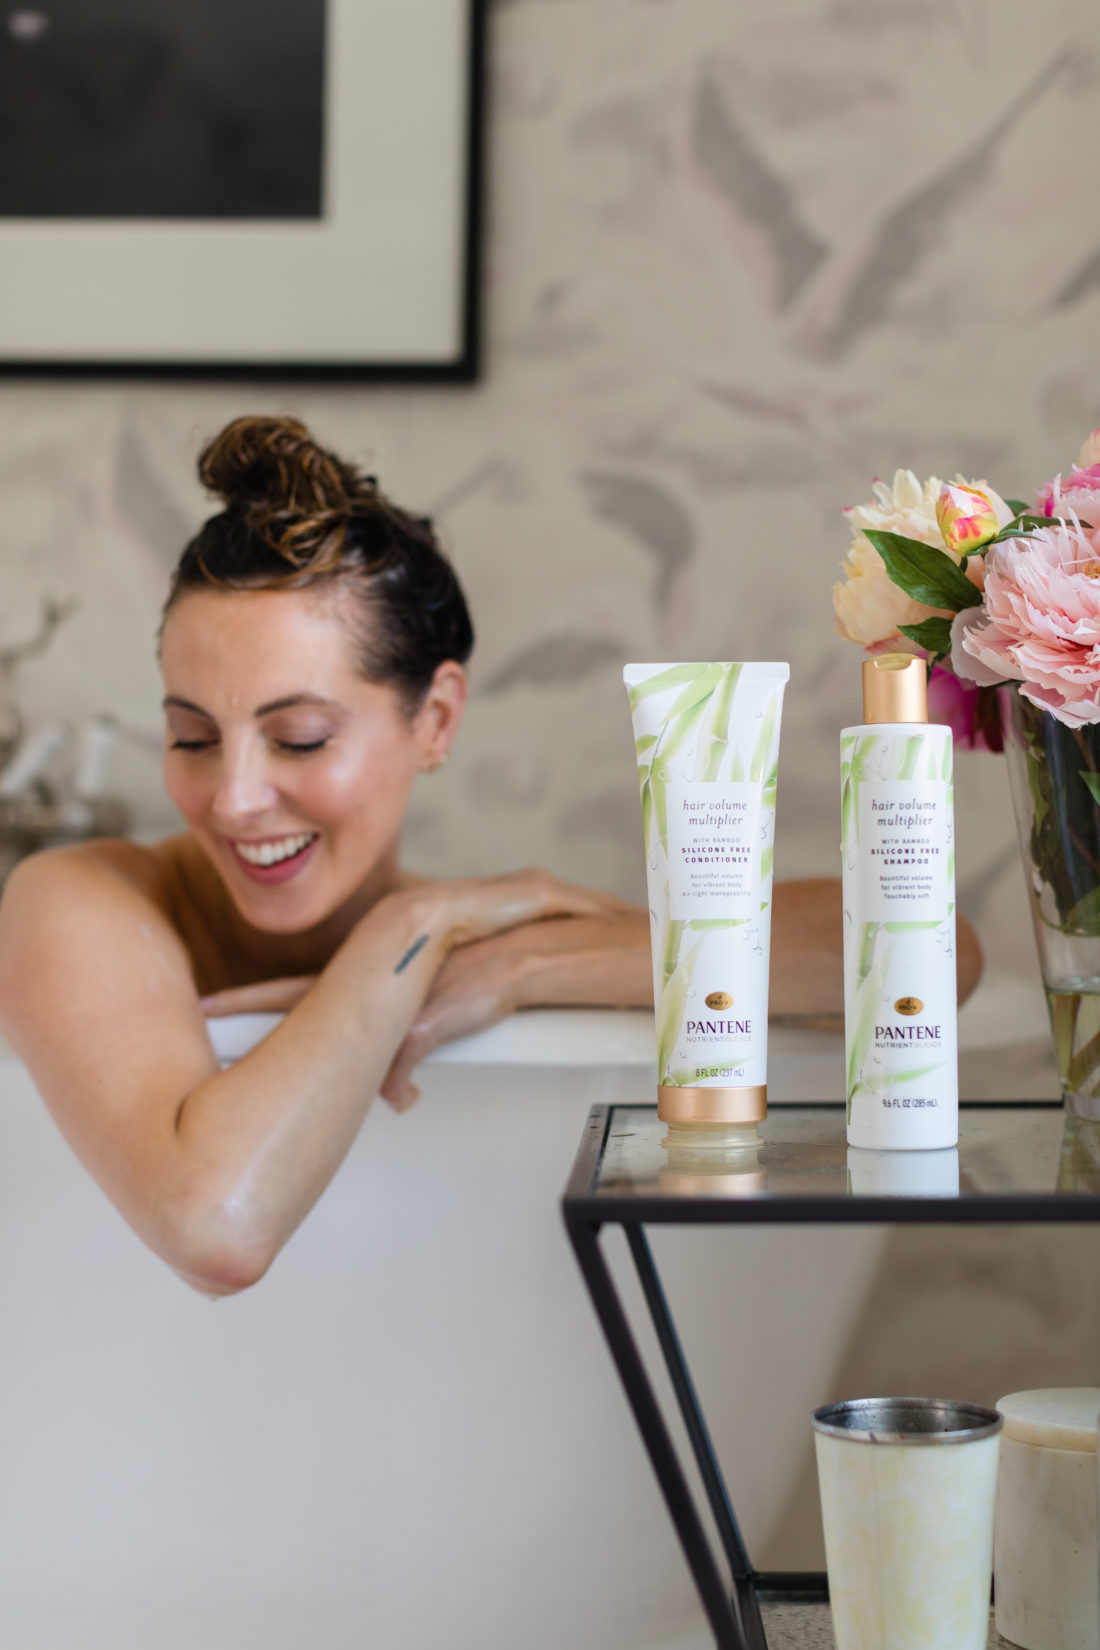 Eva Amurri shares how she's revitalizing her postpartum hair